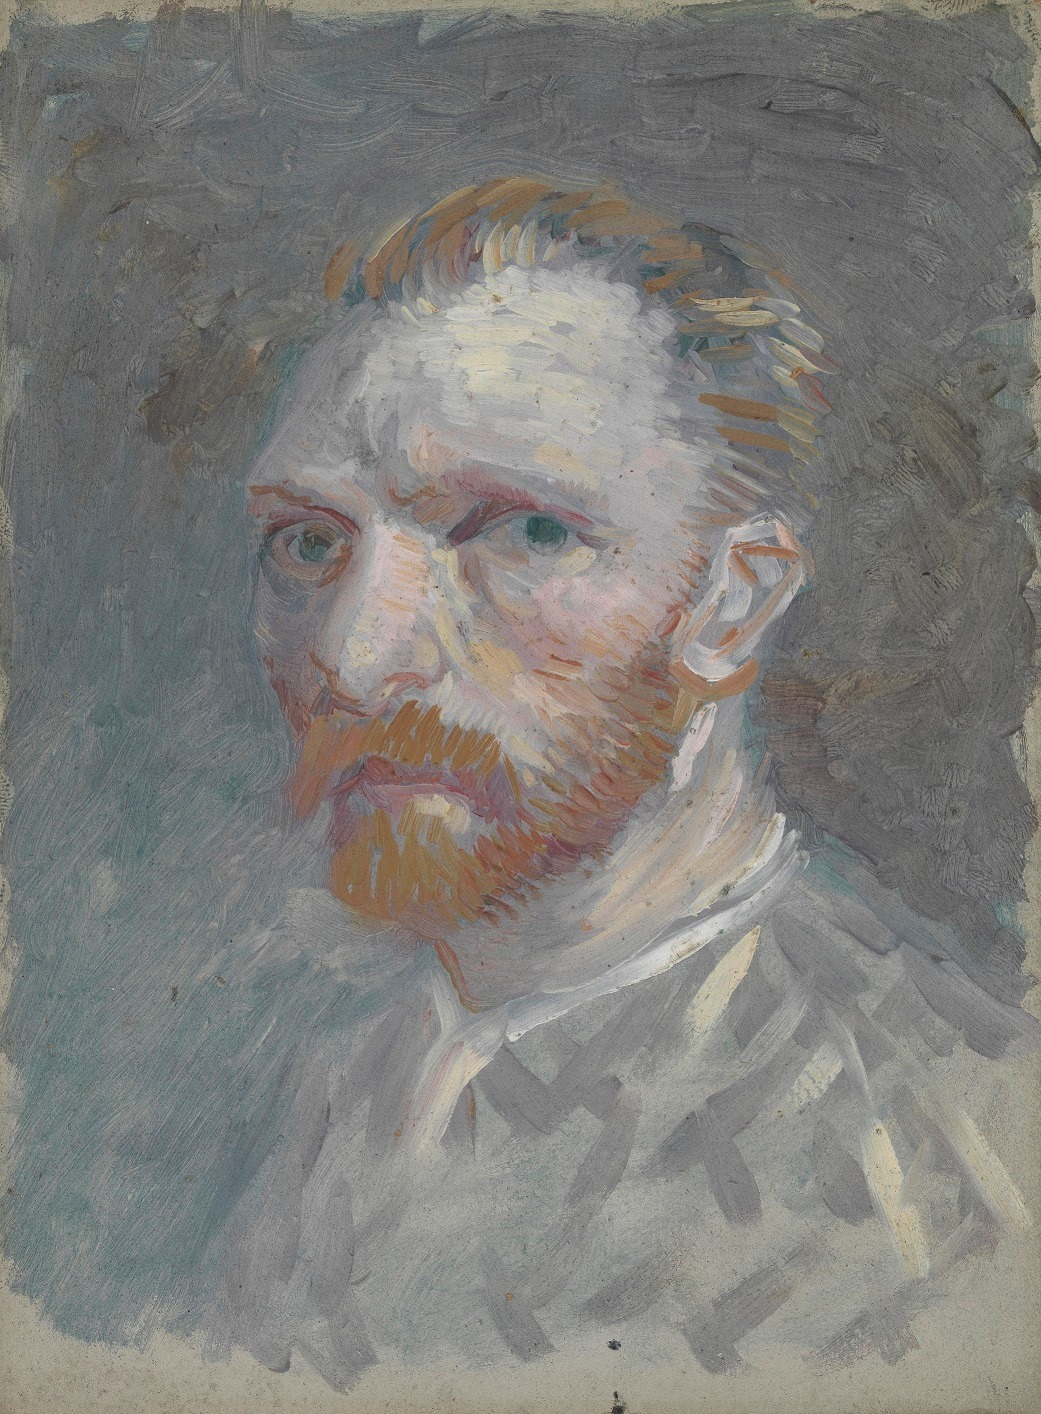 Van Gogh, Self-Portrait, March-June 1887. Oil on cardboard, 19.1 x 14.1 cm. Van Gogh Museum, Amsterdam.